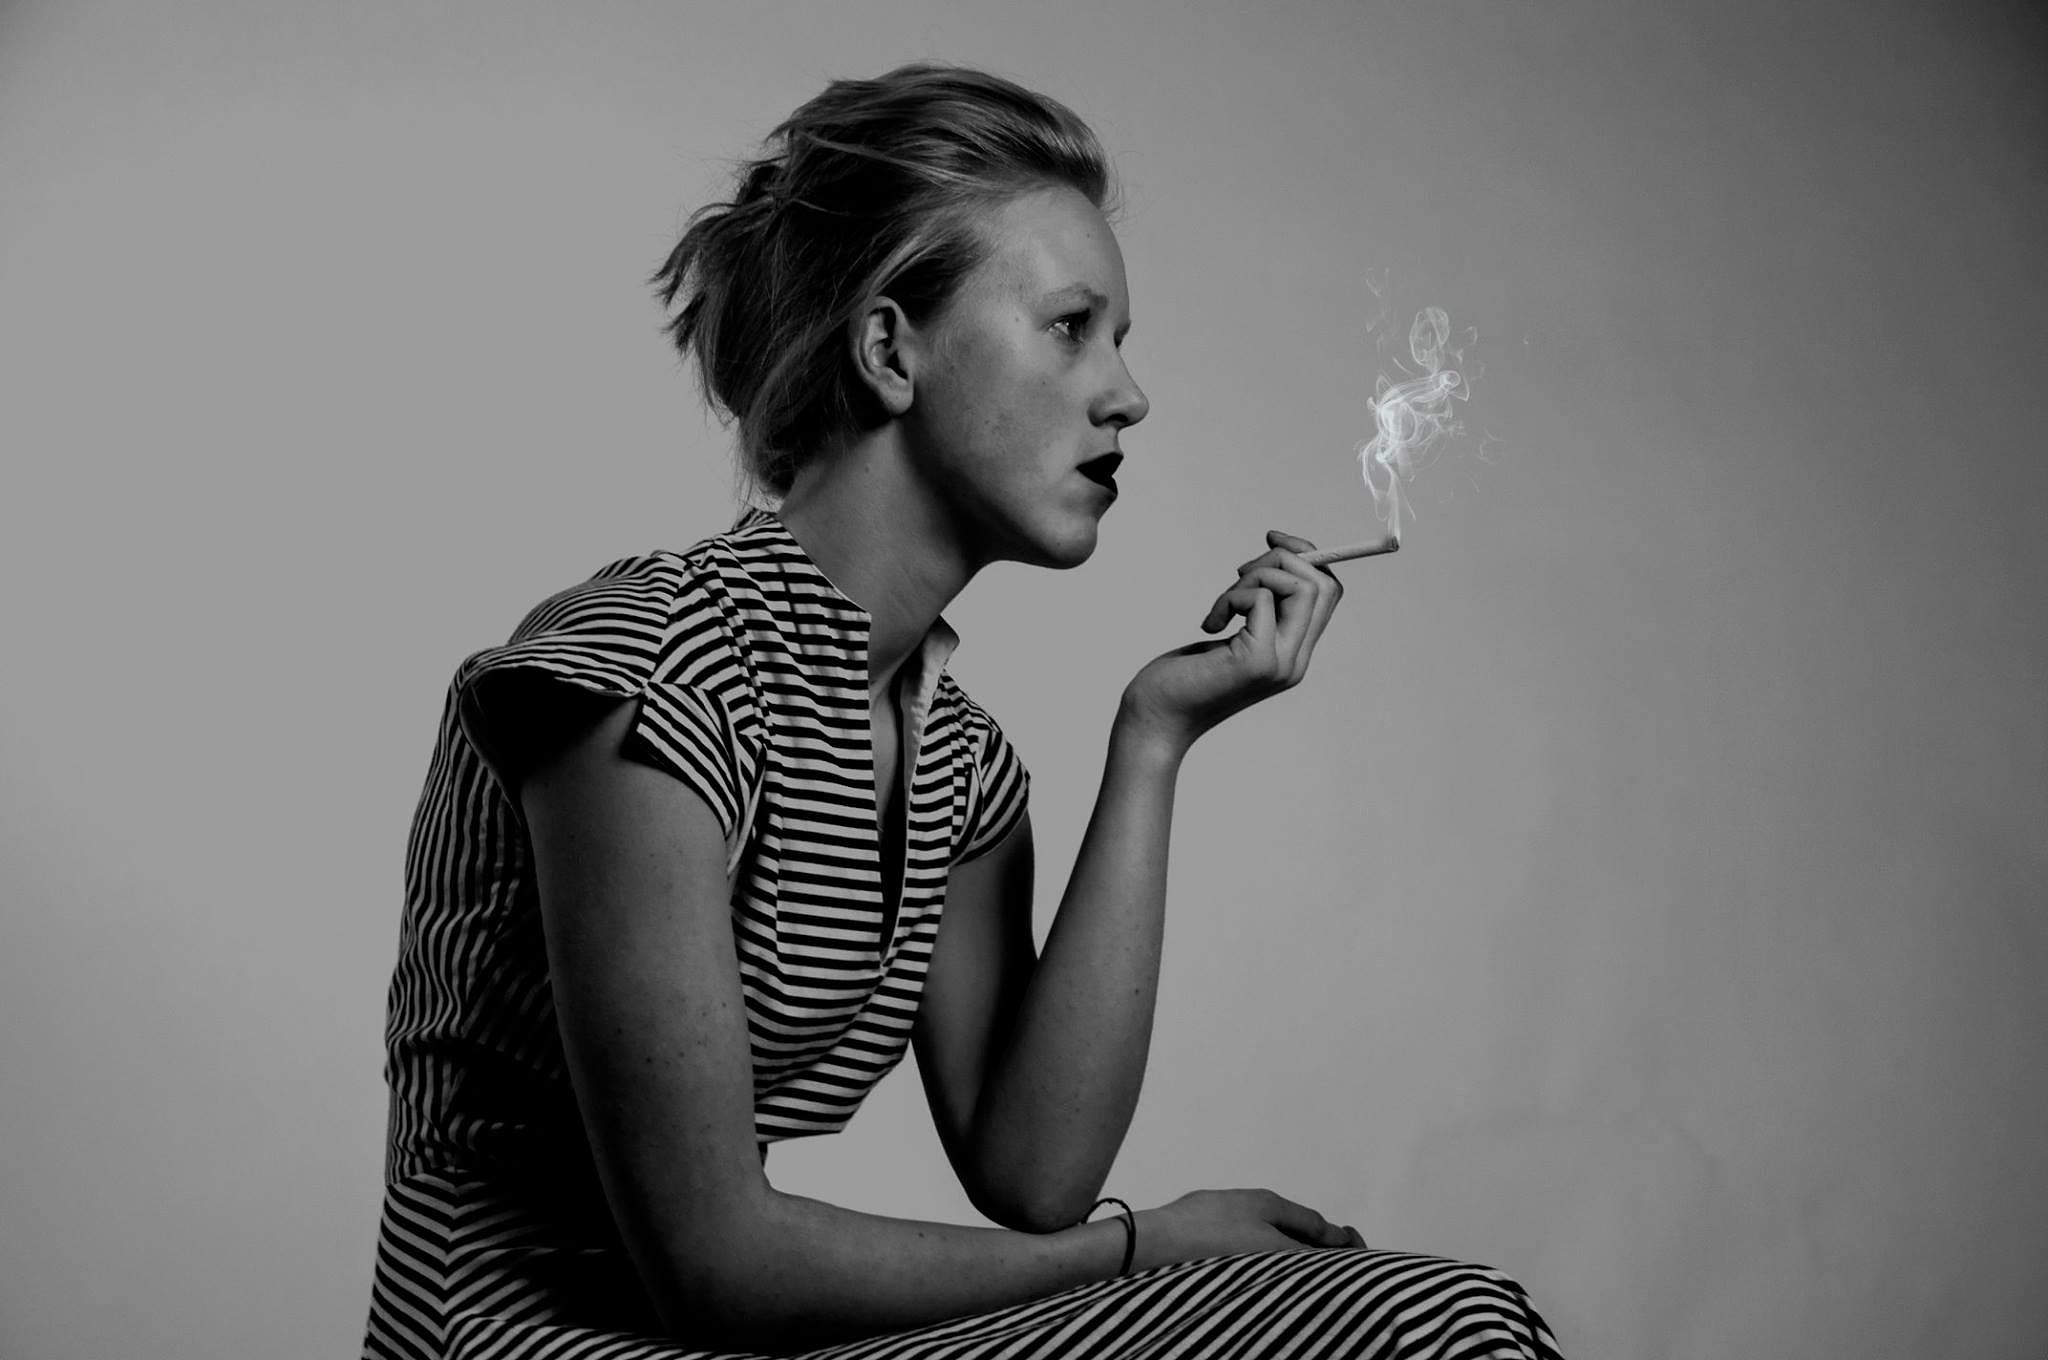 going back to the 50's by Amy Fiona de Bruin